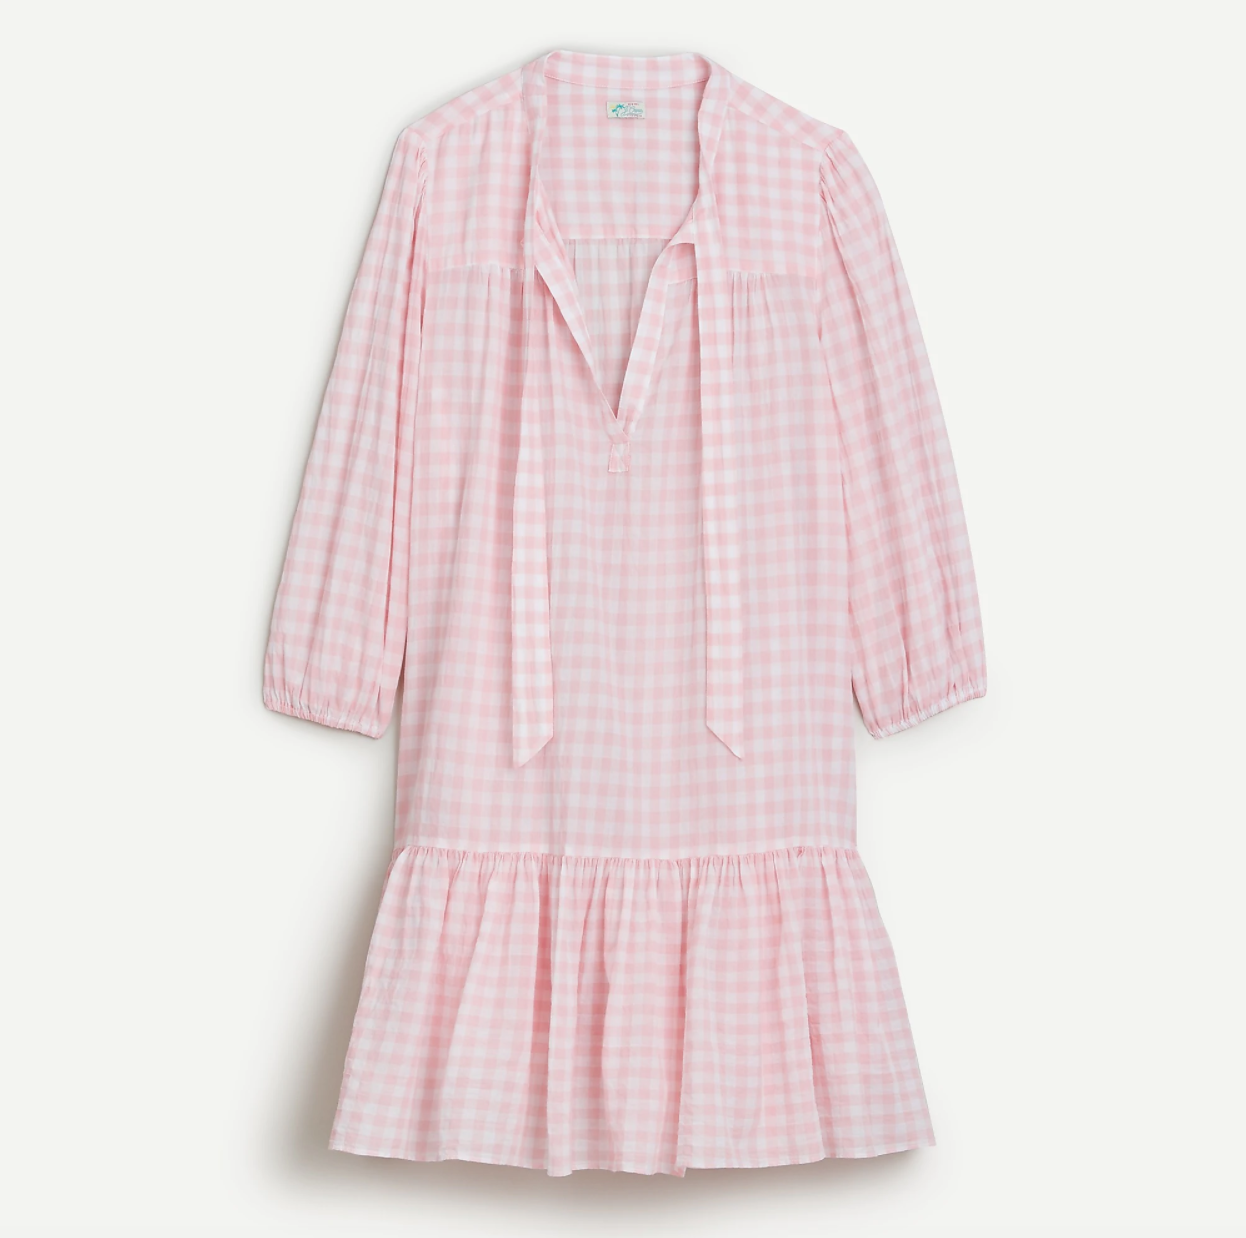 J Crew Beach Tunic in Pink Gingham